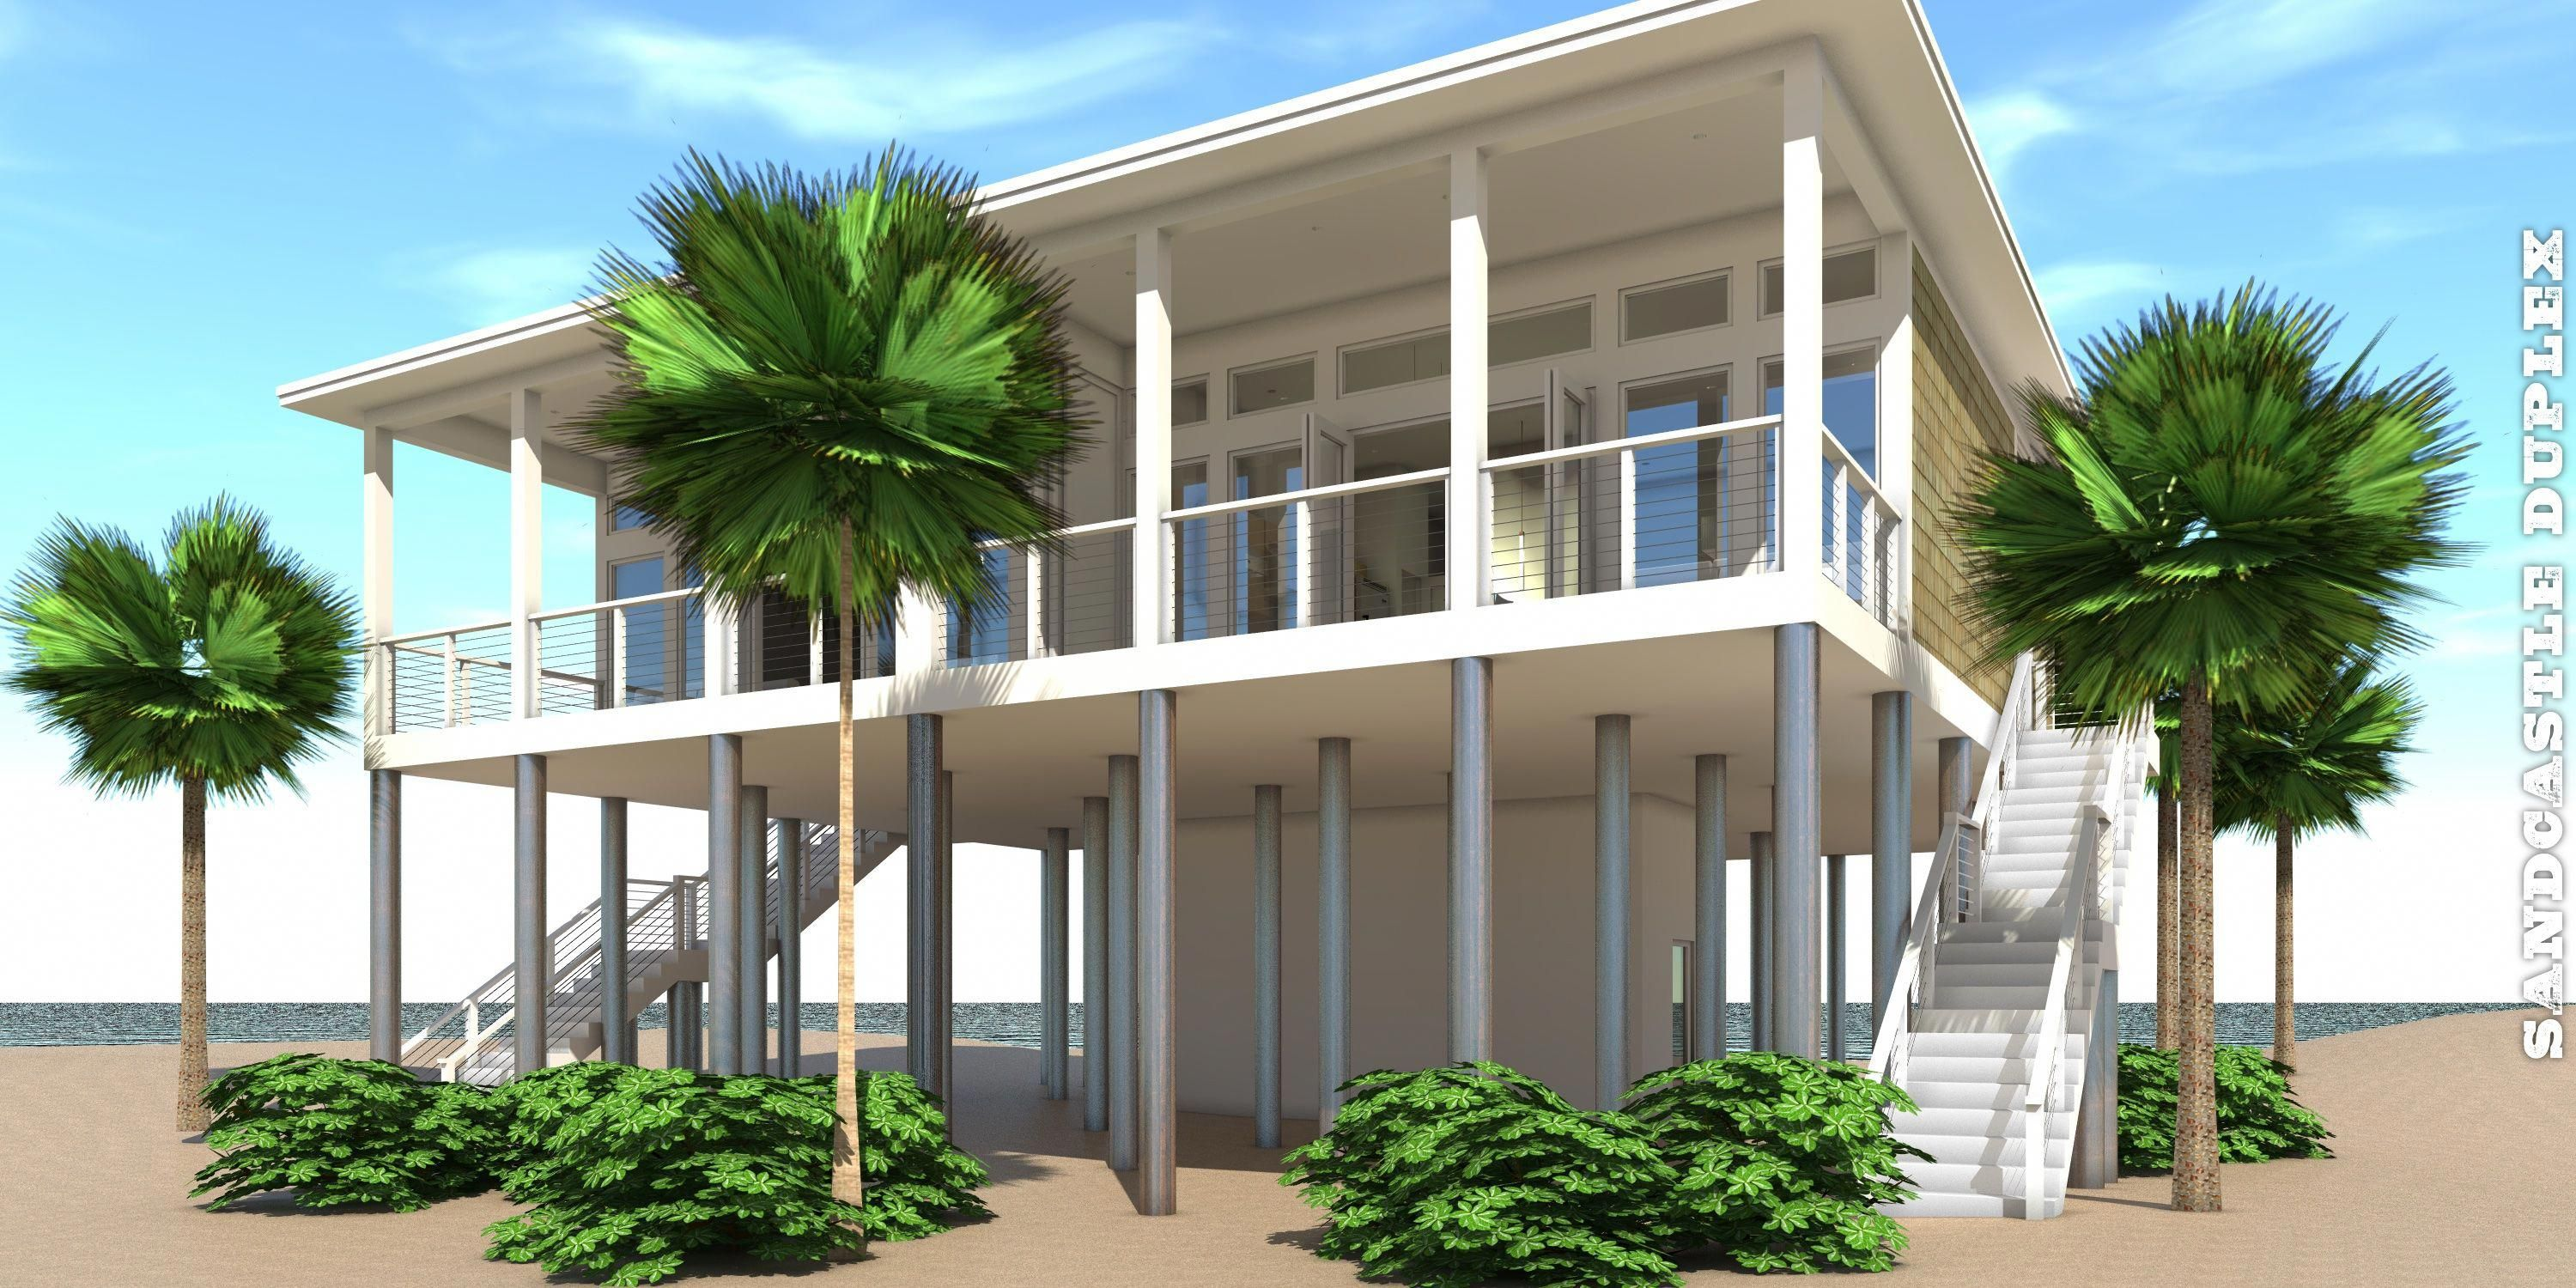 Condemned Woodworking Tools Ideas Crafty Planswoodworkingarticles Beach House Plans Duplex Plans House Plans